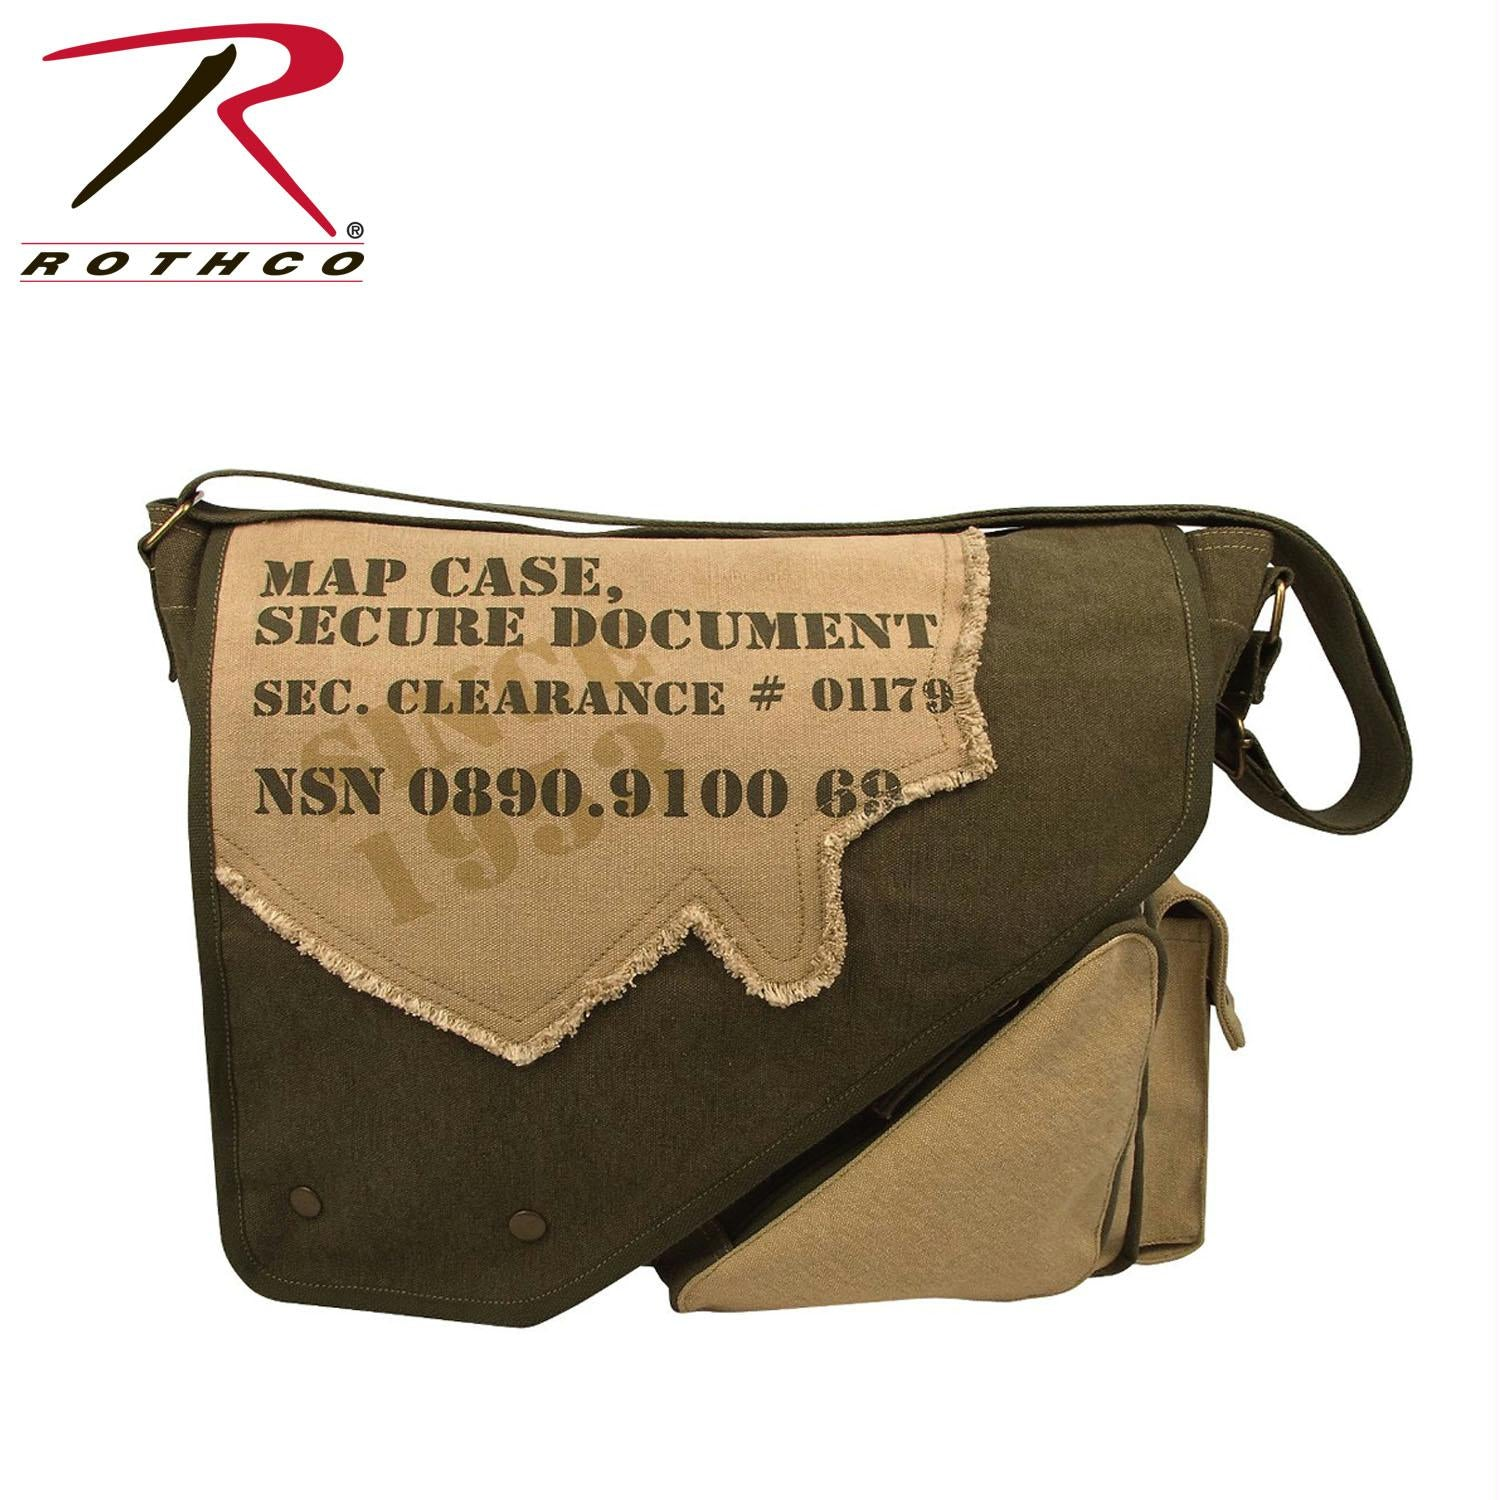 Rothco Vintage Canvas Two-Tone Imprinted Map Bag - Olive Drab / Tan